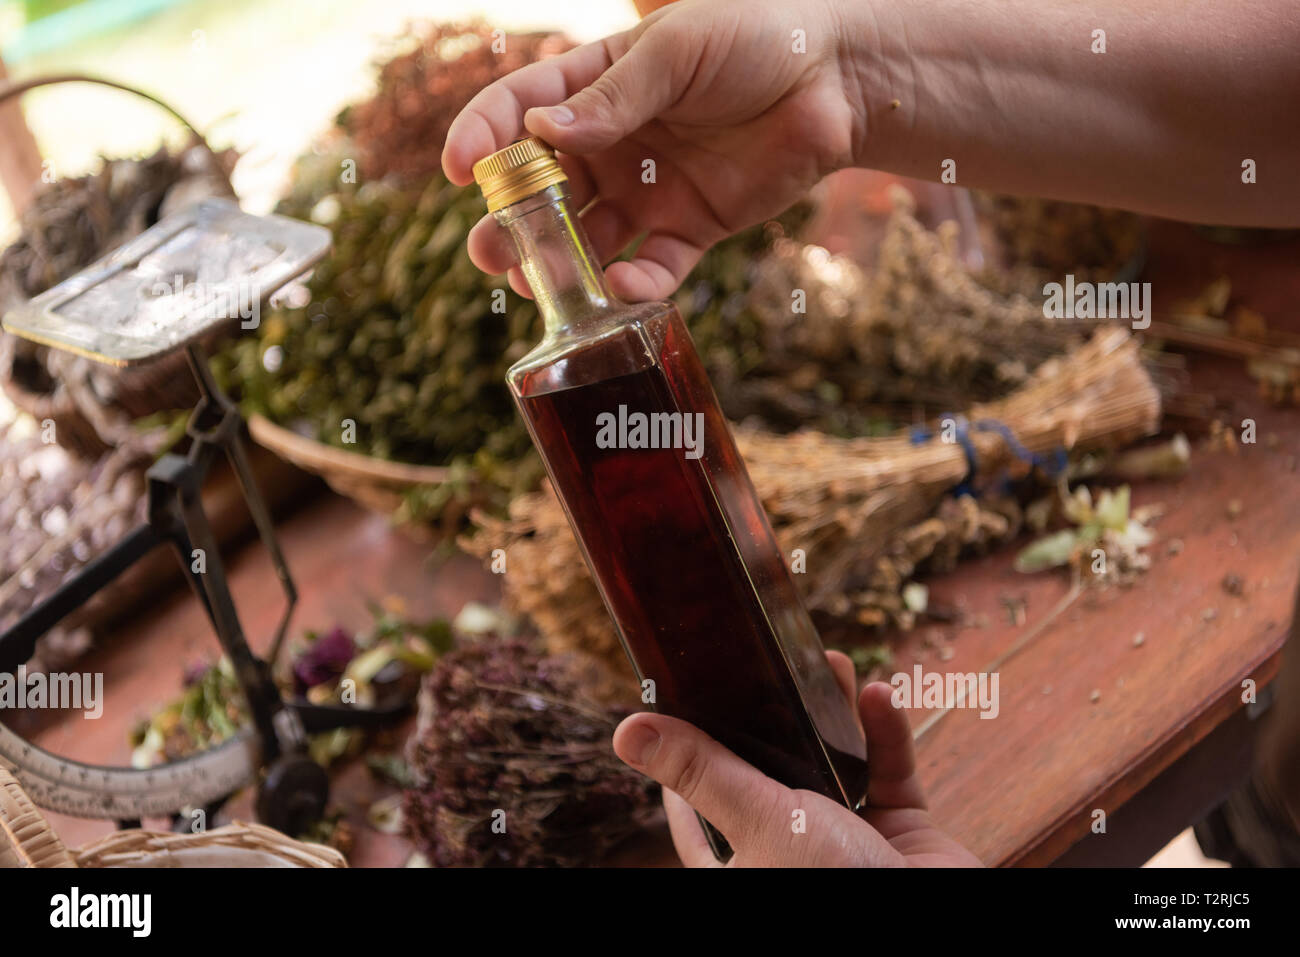 tincture or potion bottle in hand of herbalist bunch of dry healthy